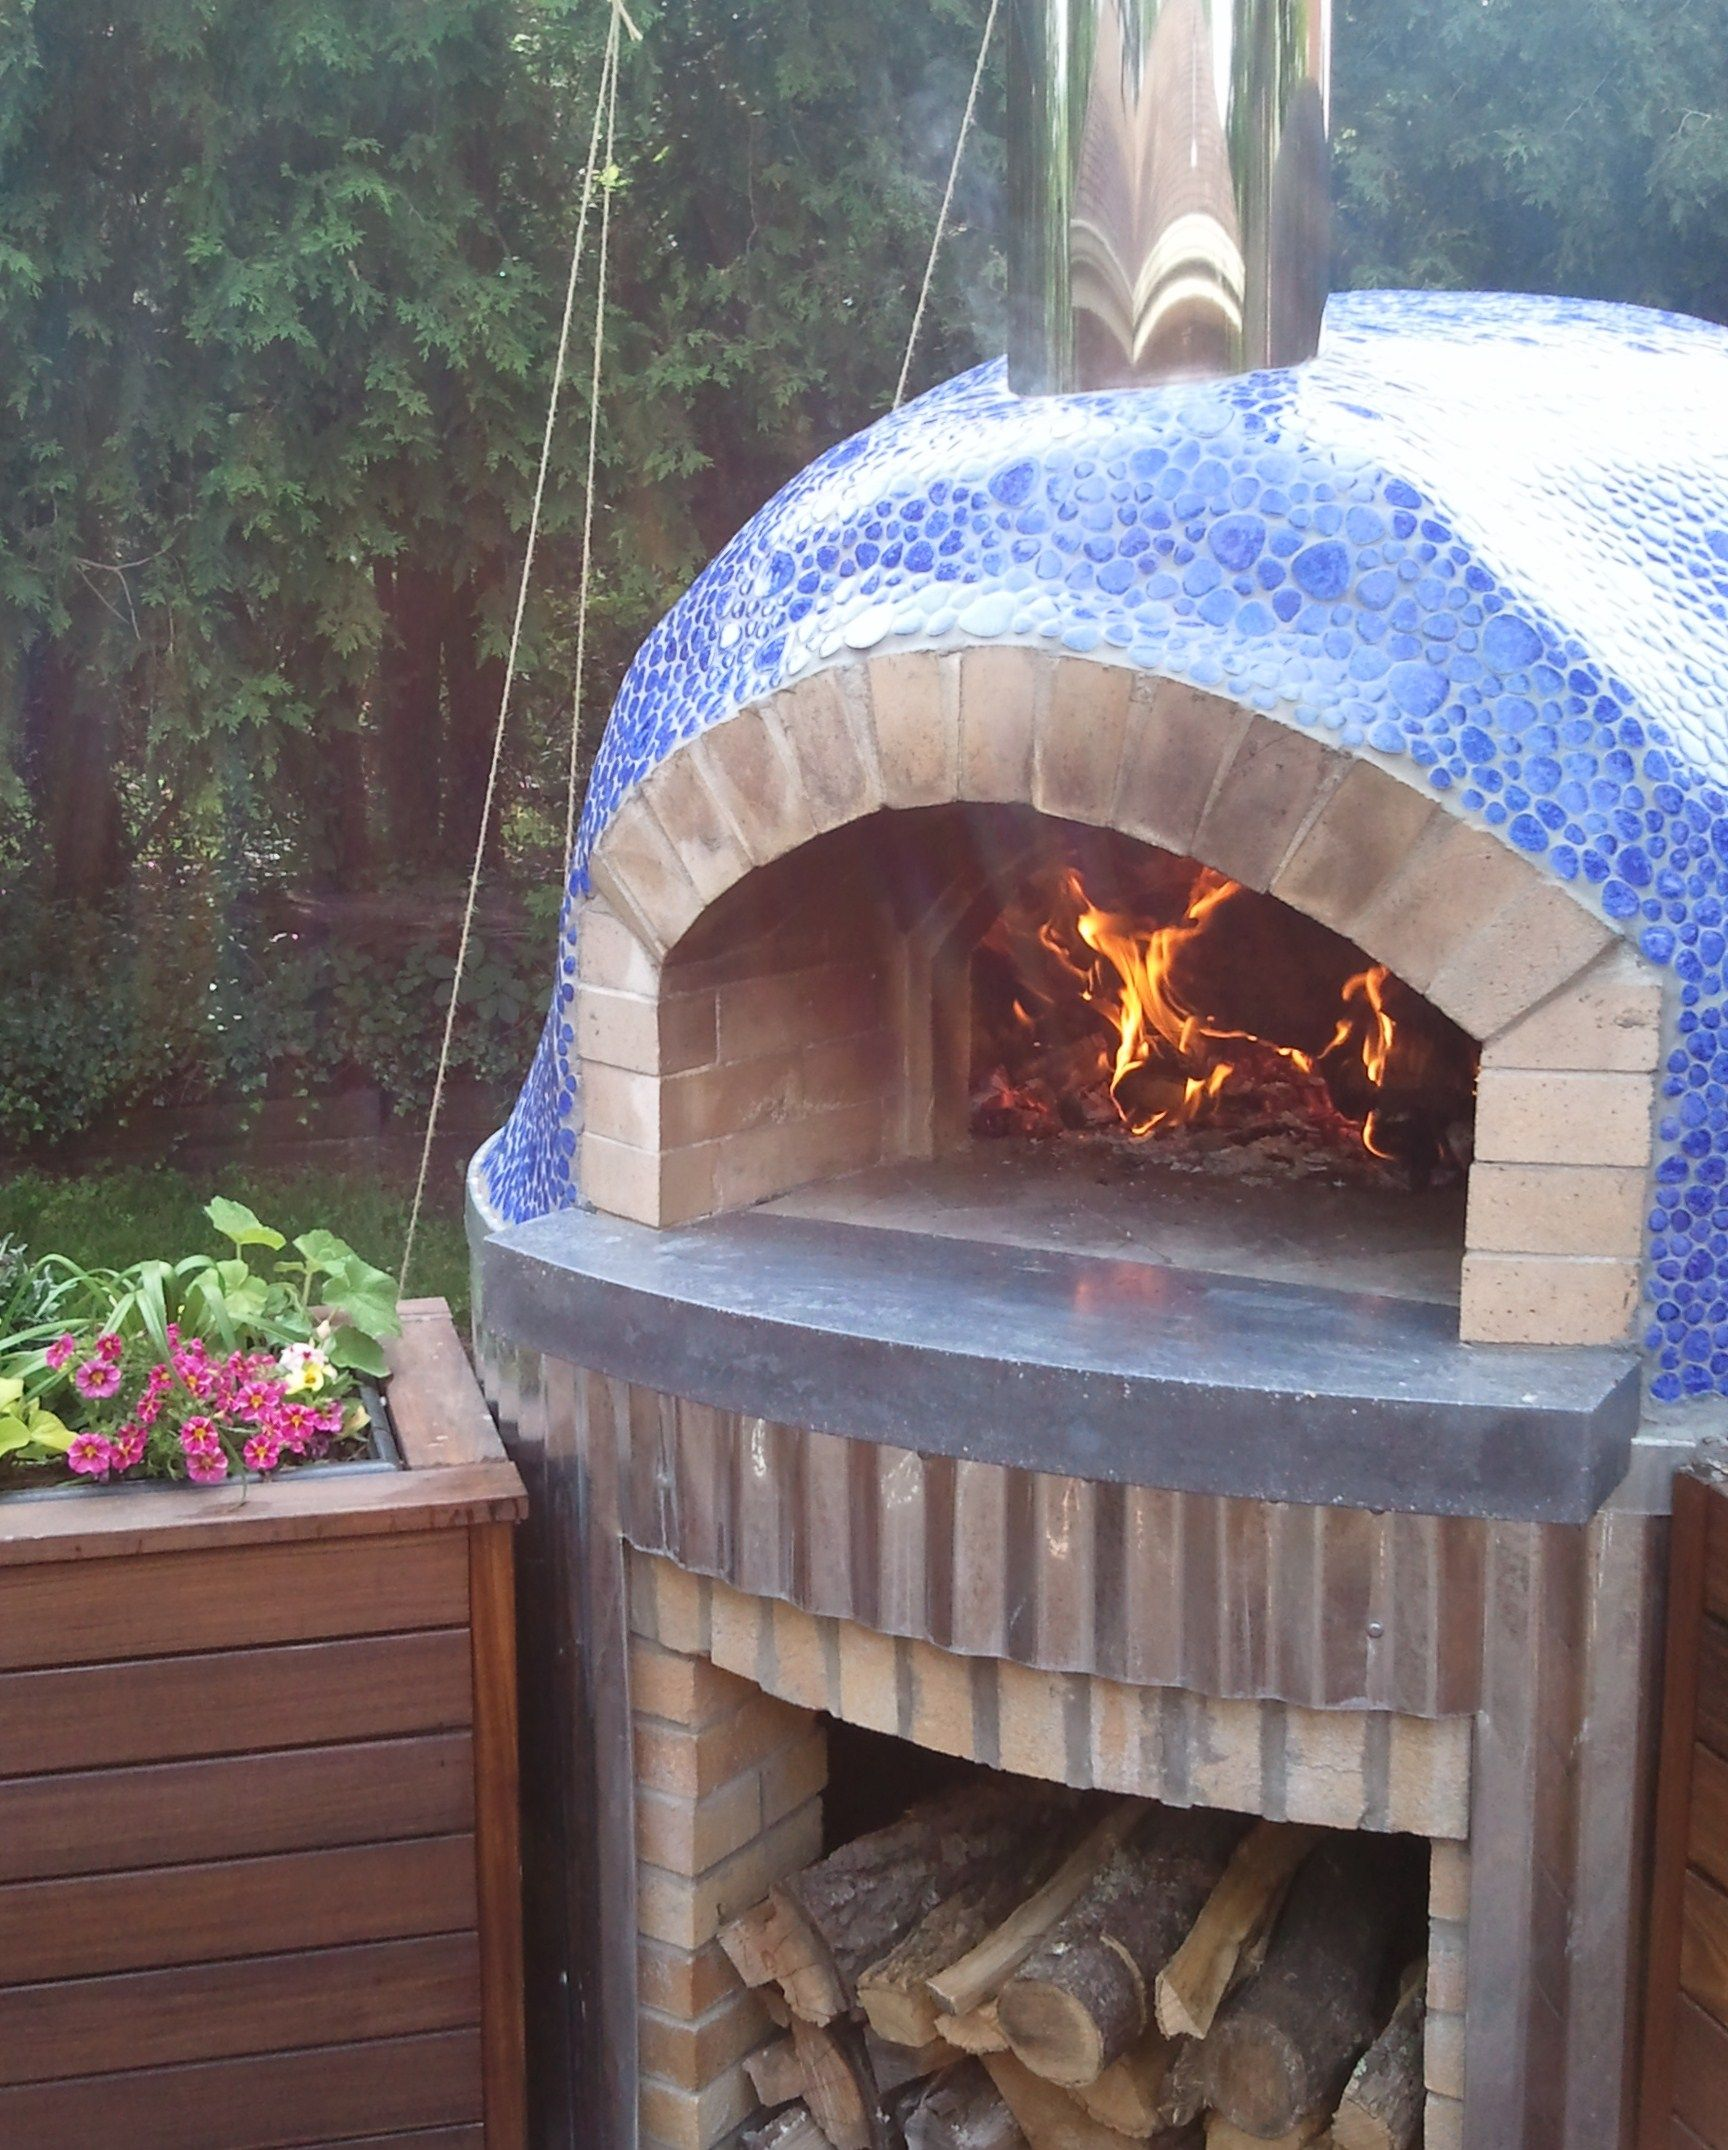 Finished Oven With Blue Tile Mosaic Dome Outdoor